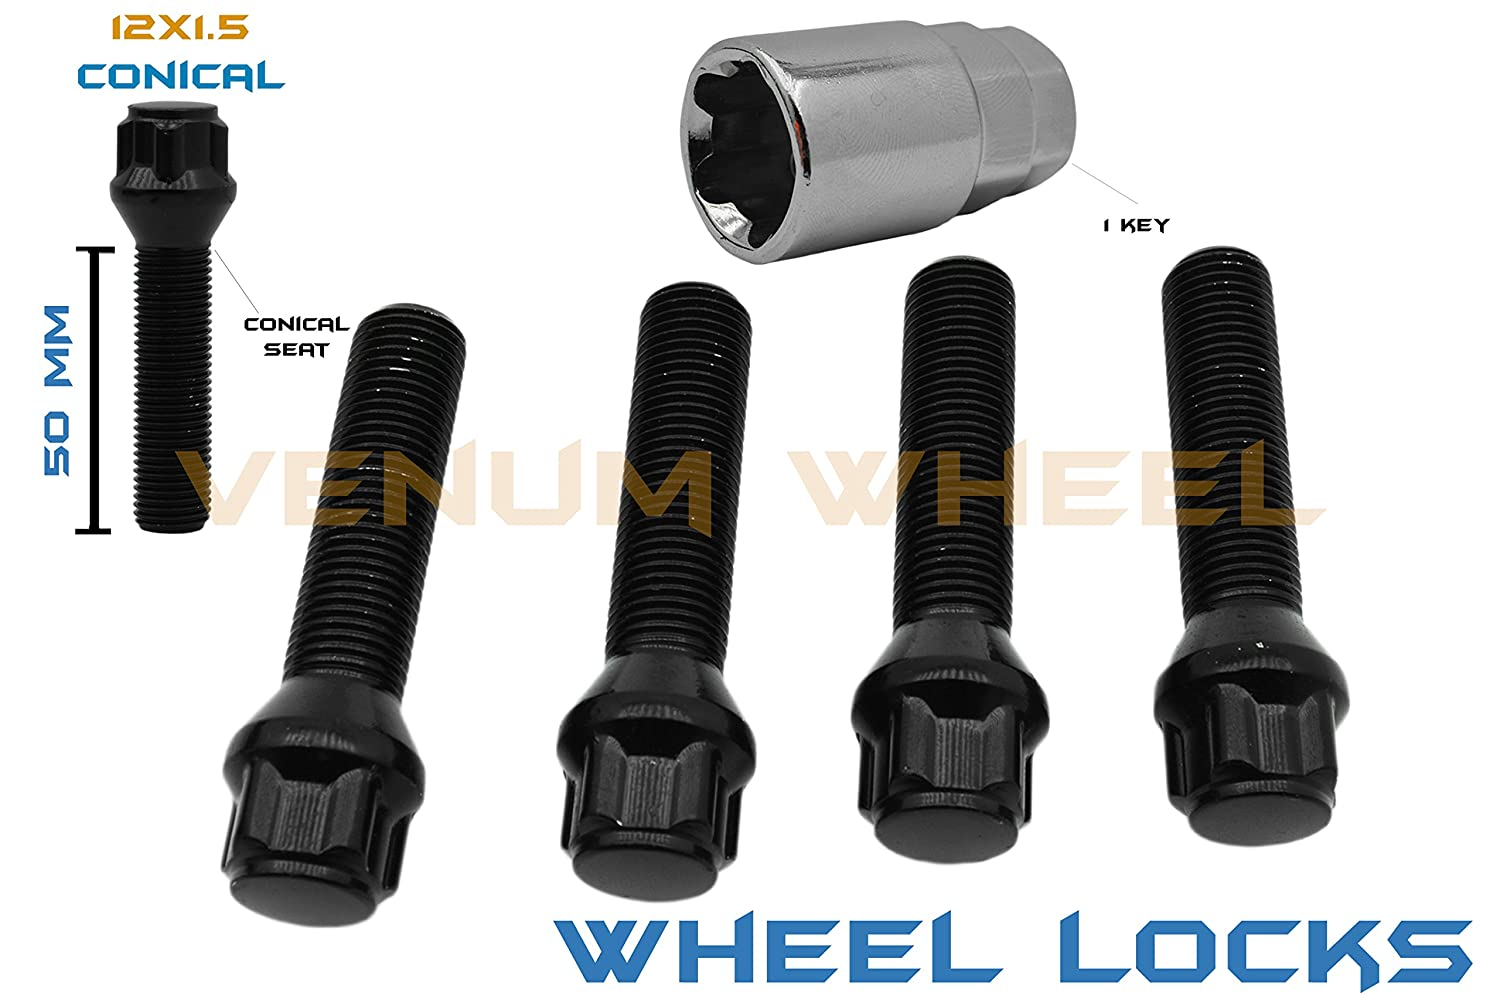 BMW 12x1.5 Wheel Locks Locking Lug Bolts Black 50mm Shank Length W/Key Included VENUM WHEEL ACCESSORIES